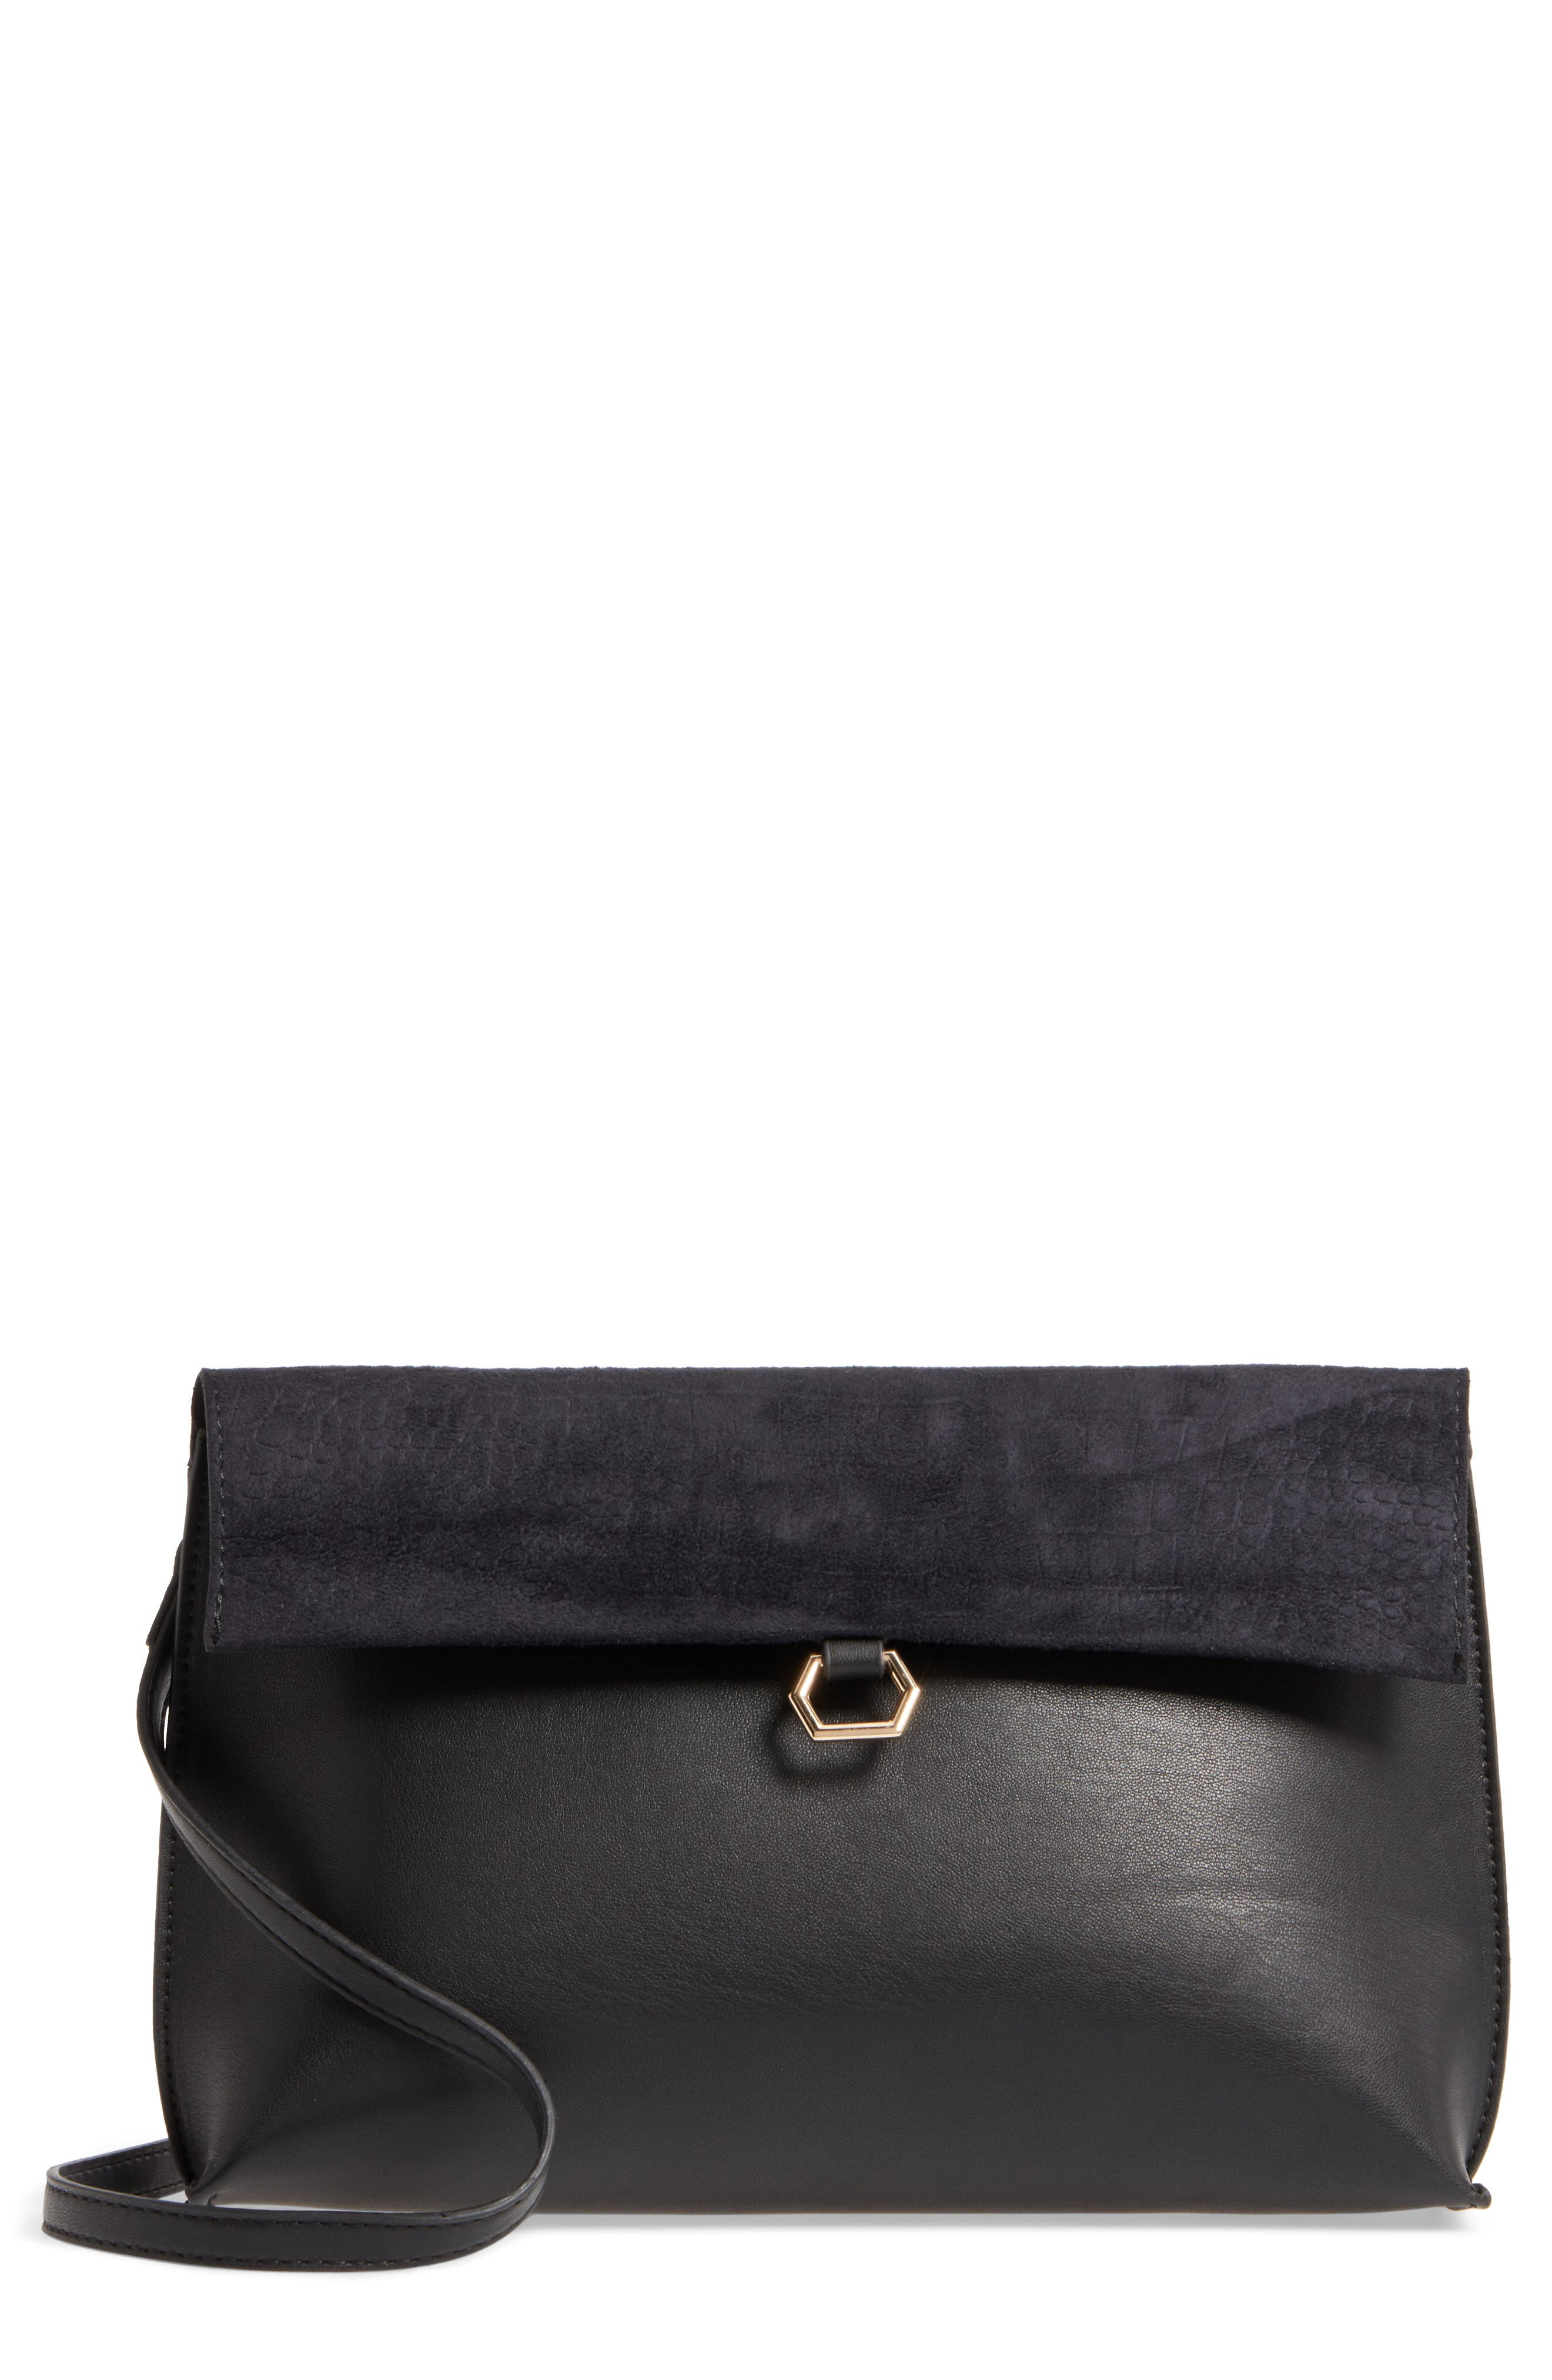 Streel Level Textured Flap Faux Leather Crossbody Bag